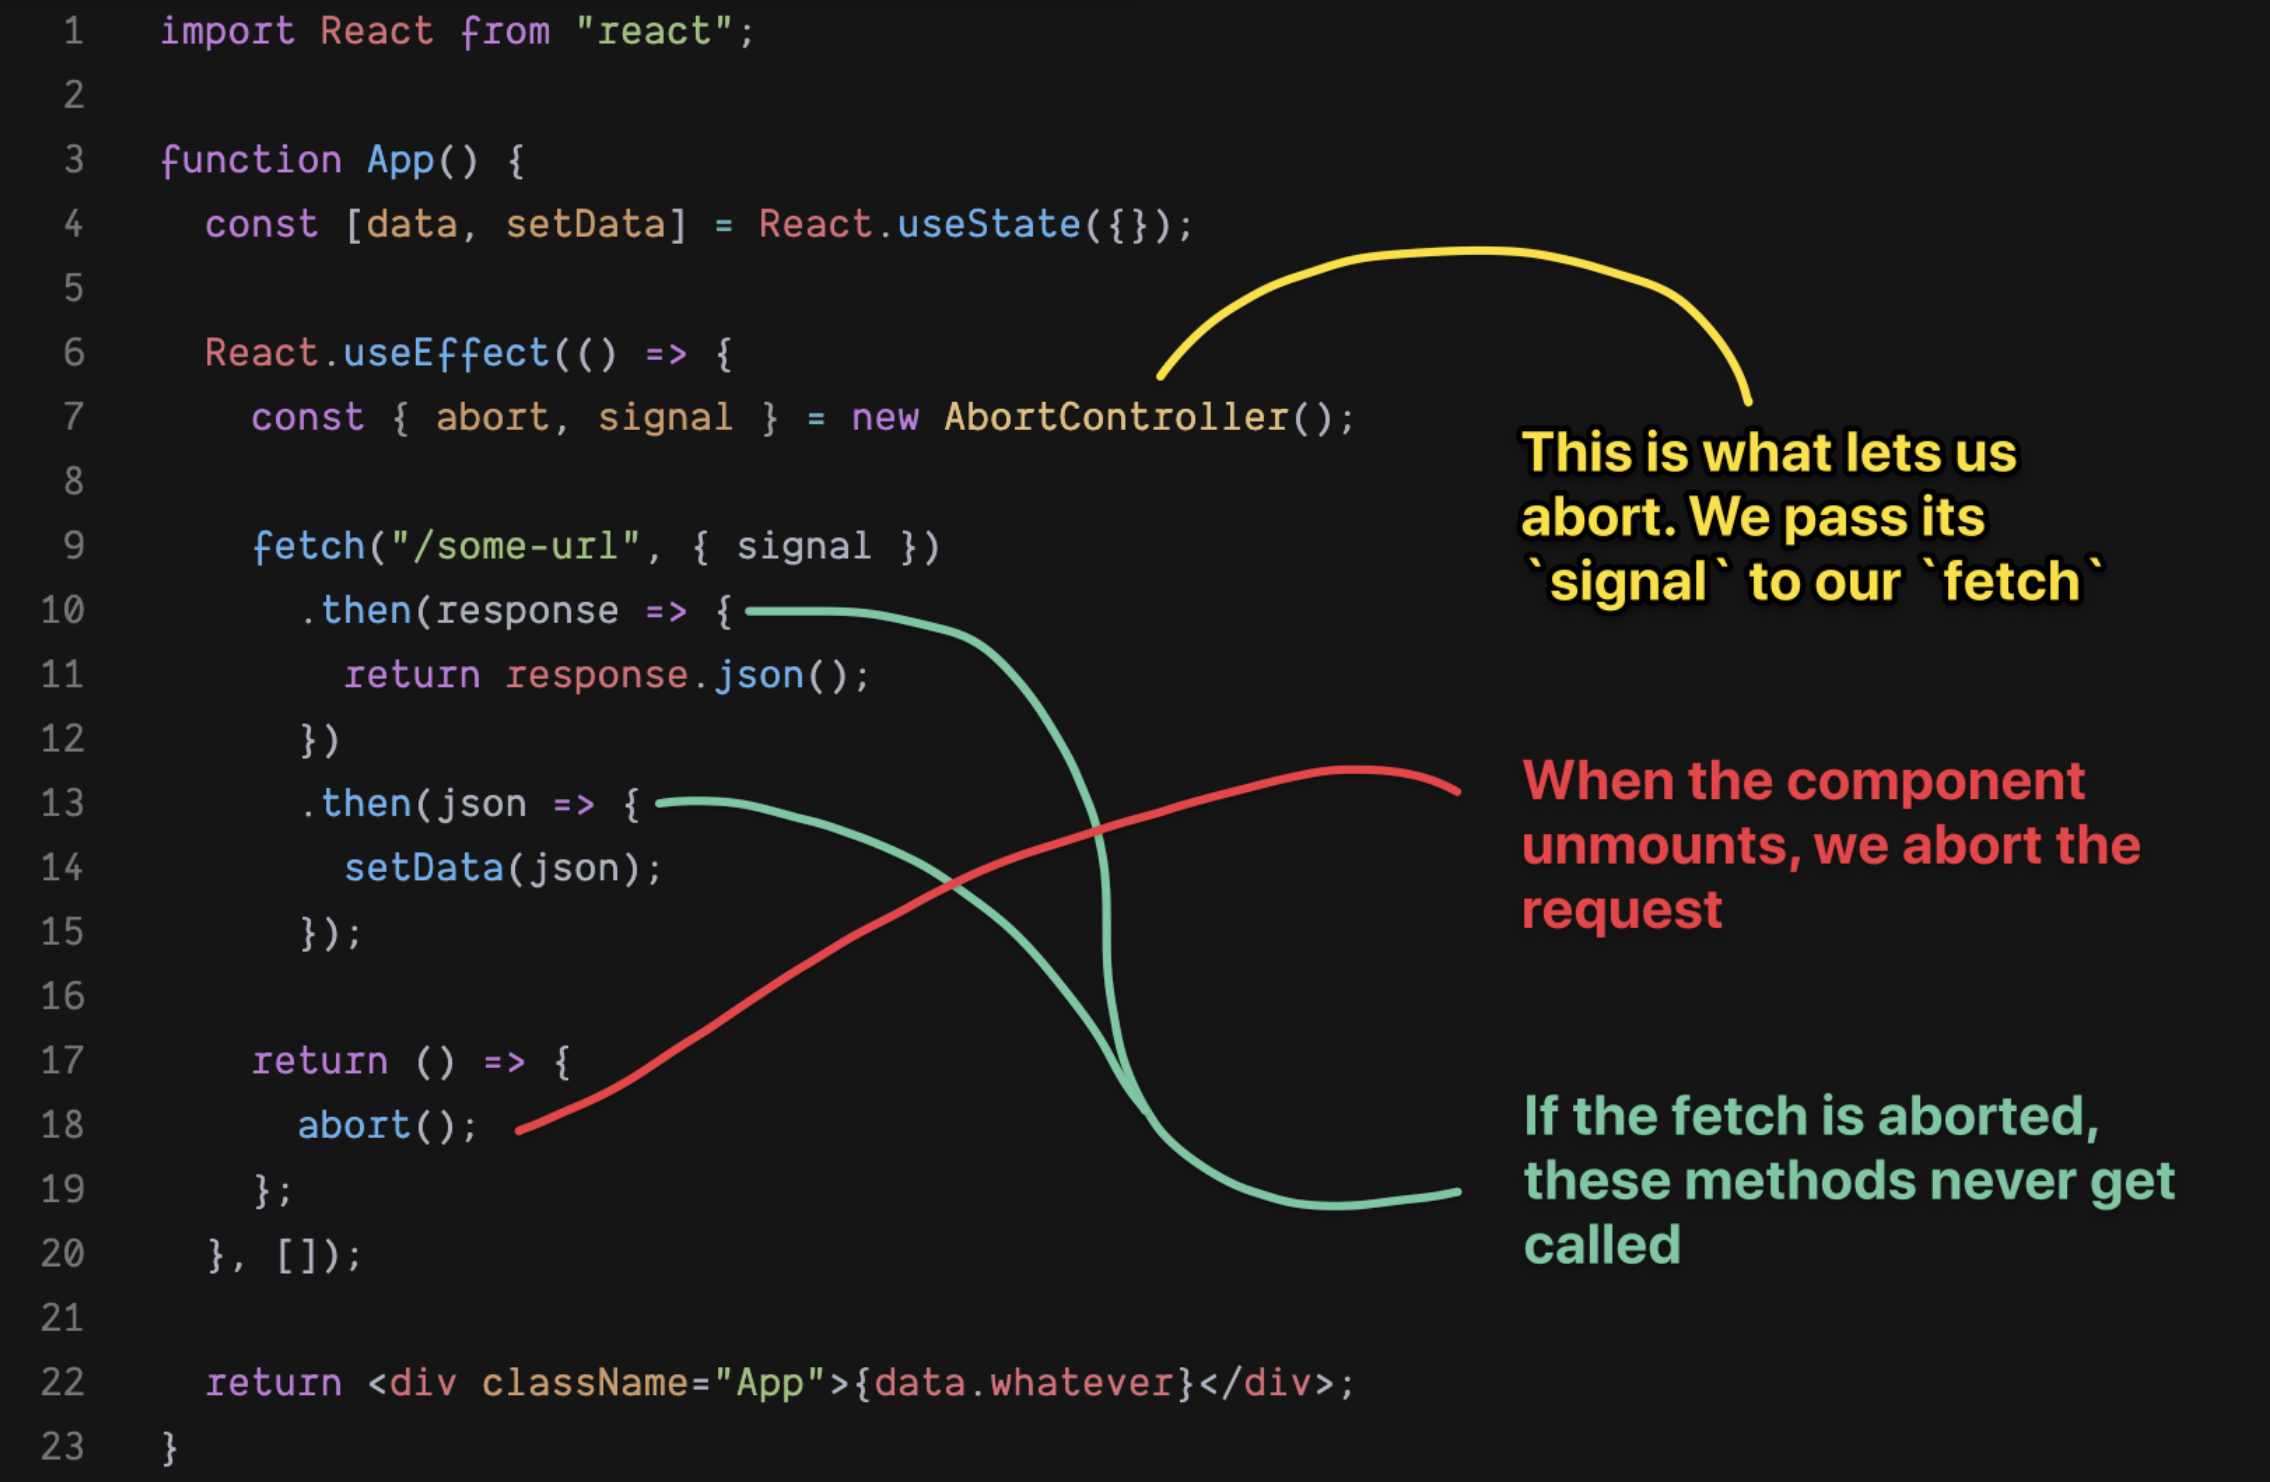 A code snippet showing a cancellable fetch. For code, view sandbox in linked tweet